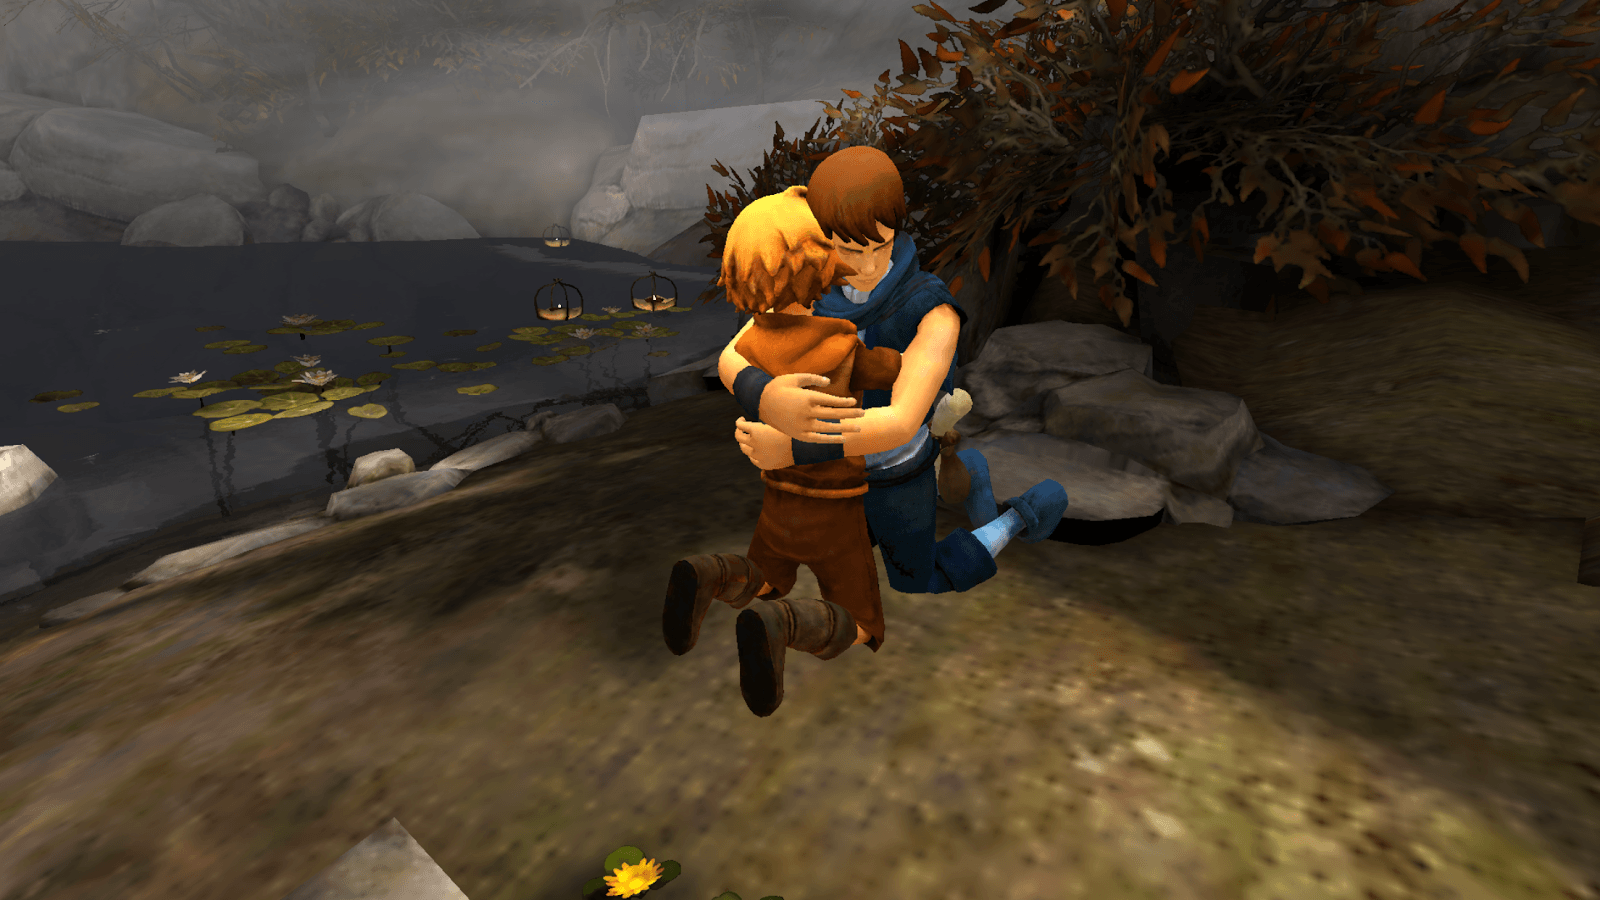 Brothers: A Tale of Two Sons démarre son épopée sur Android